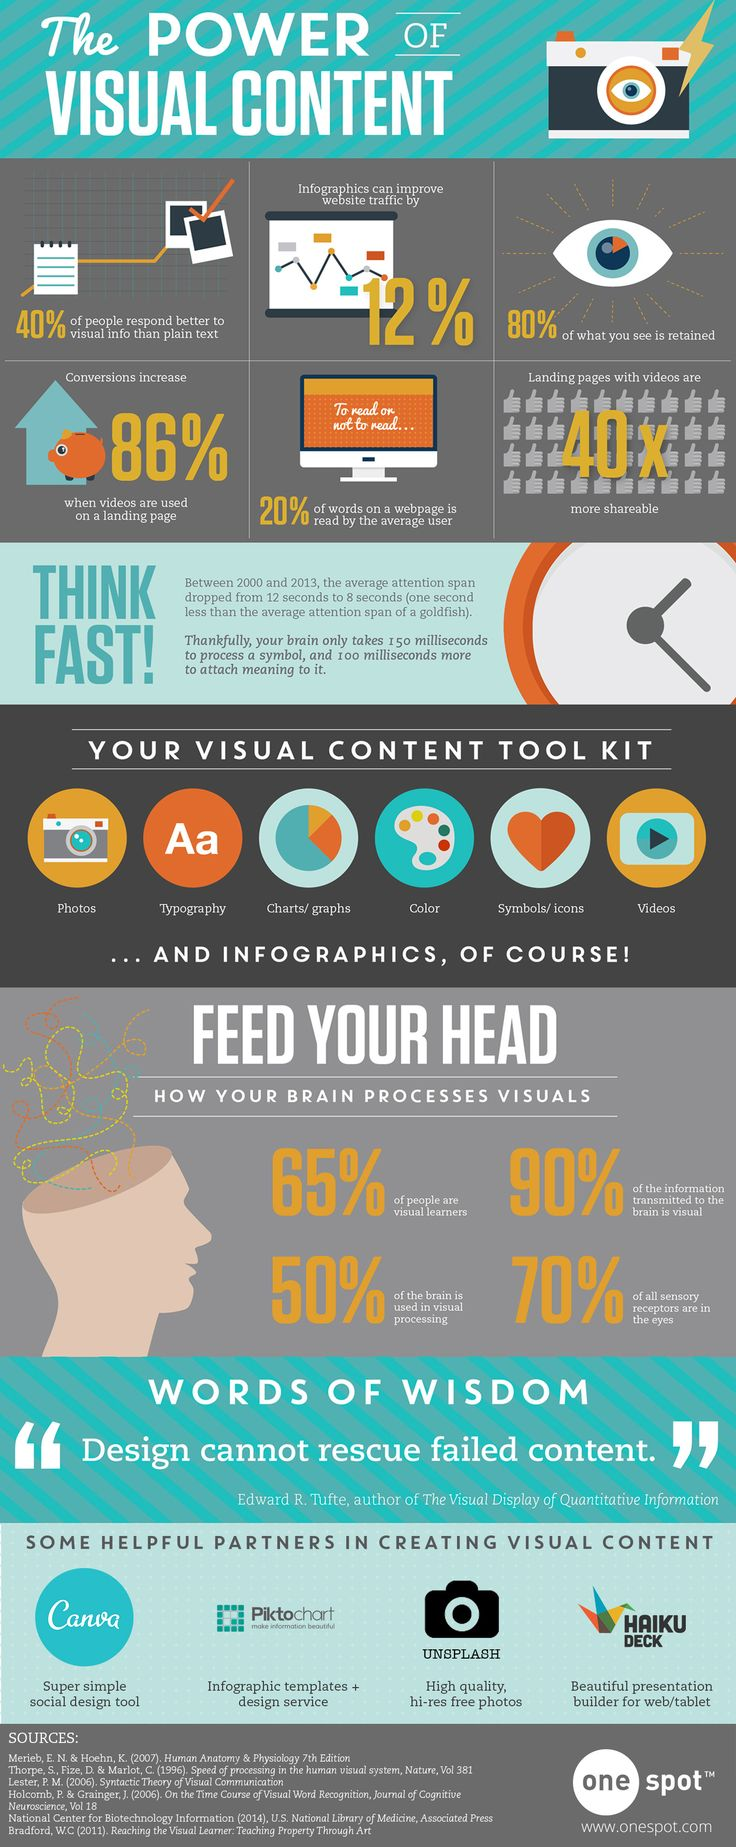 The Power of Visual Content #infographic #Visual #ContentMarketing #Design